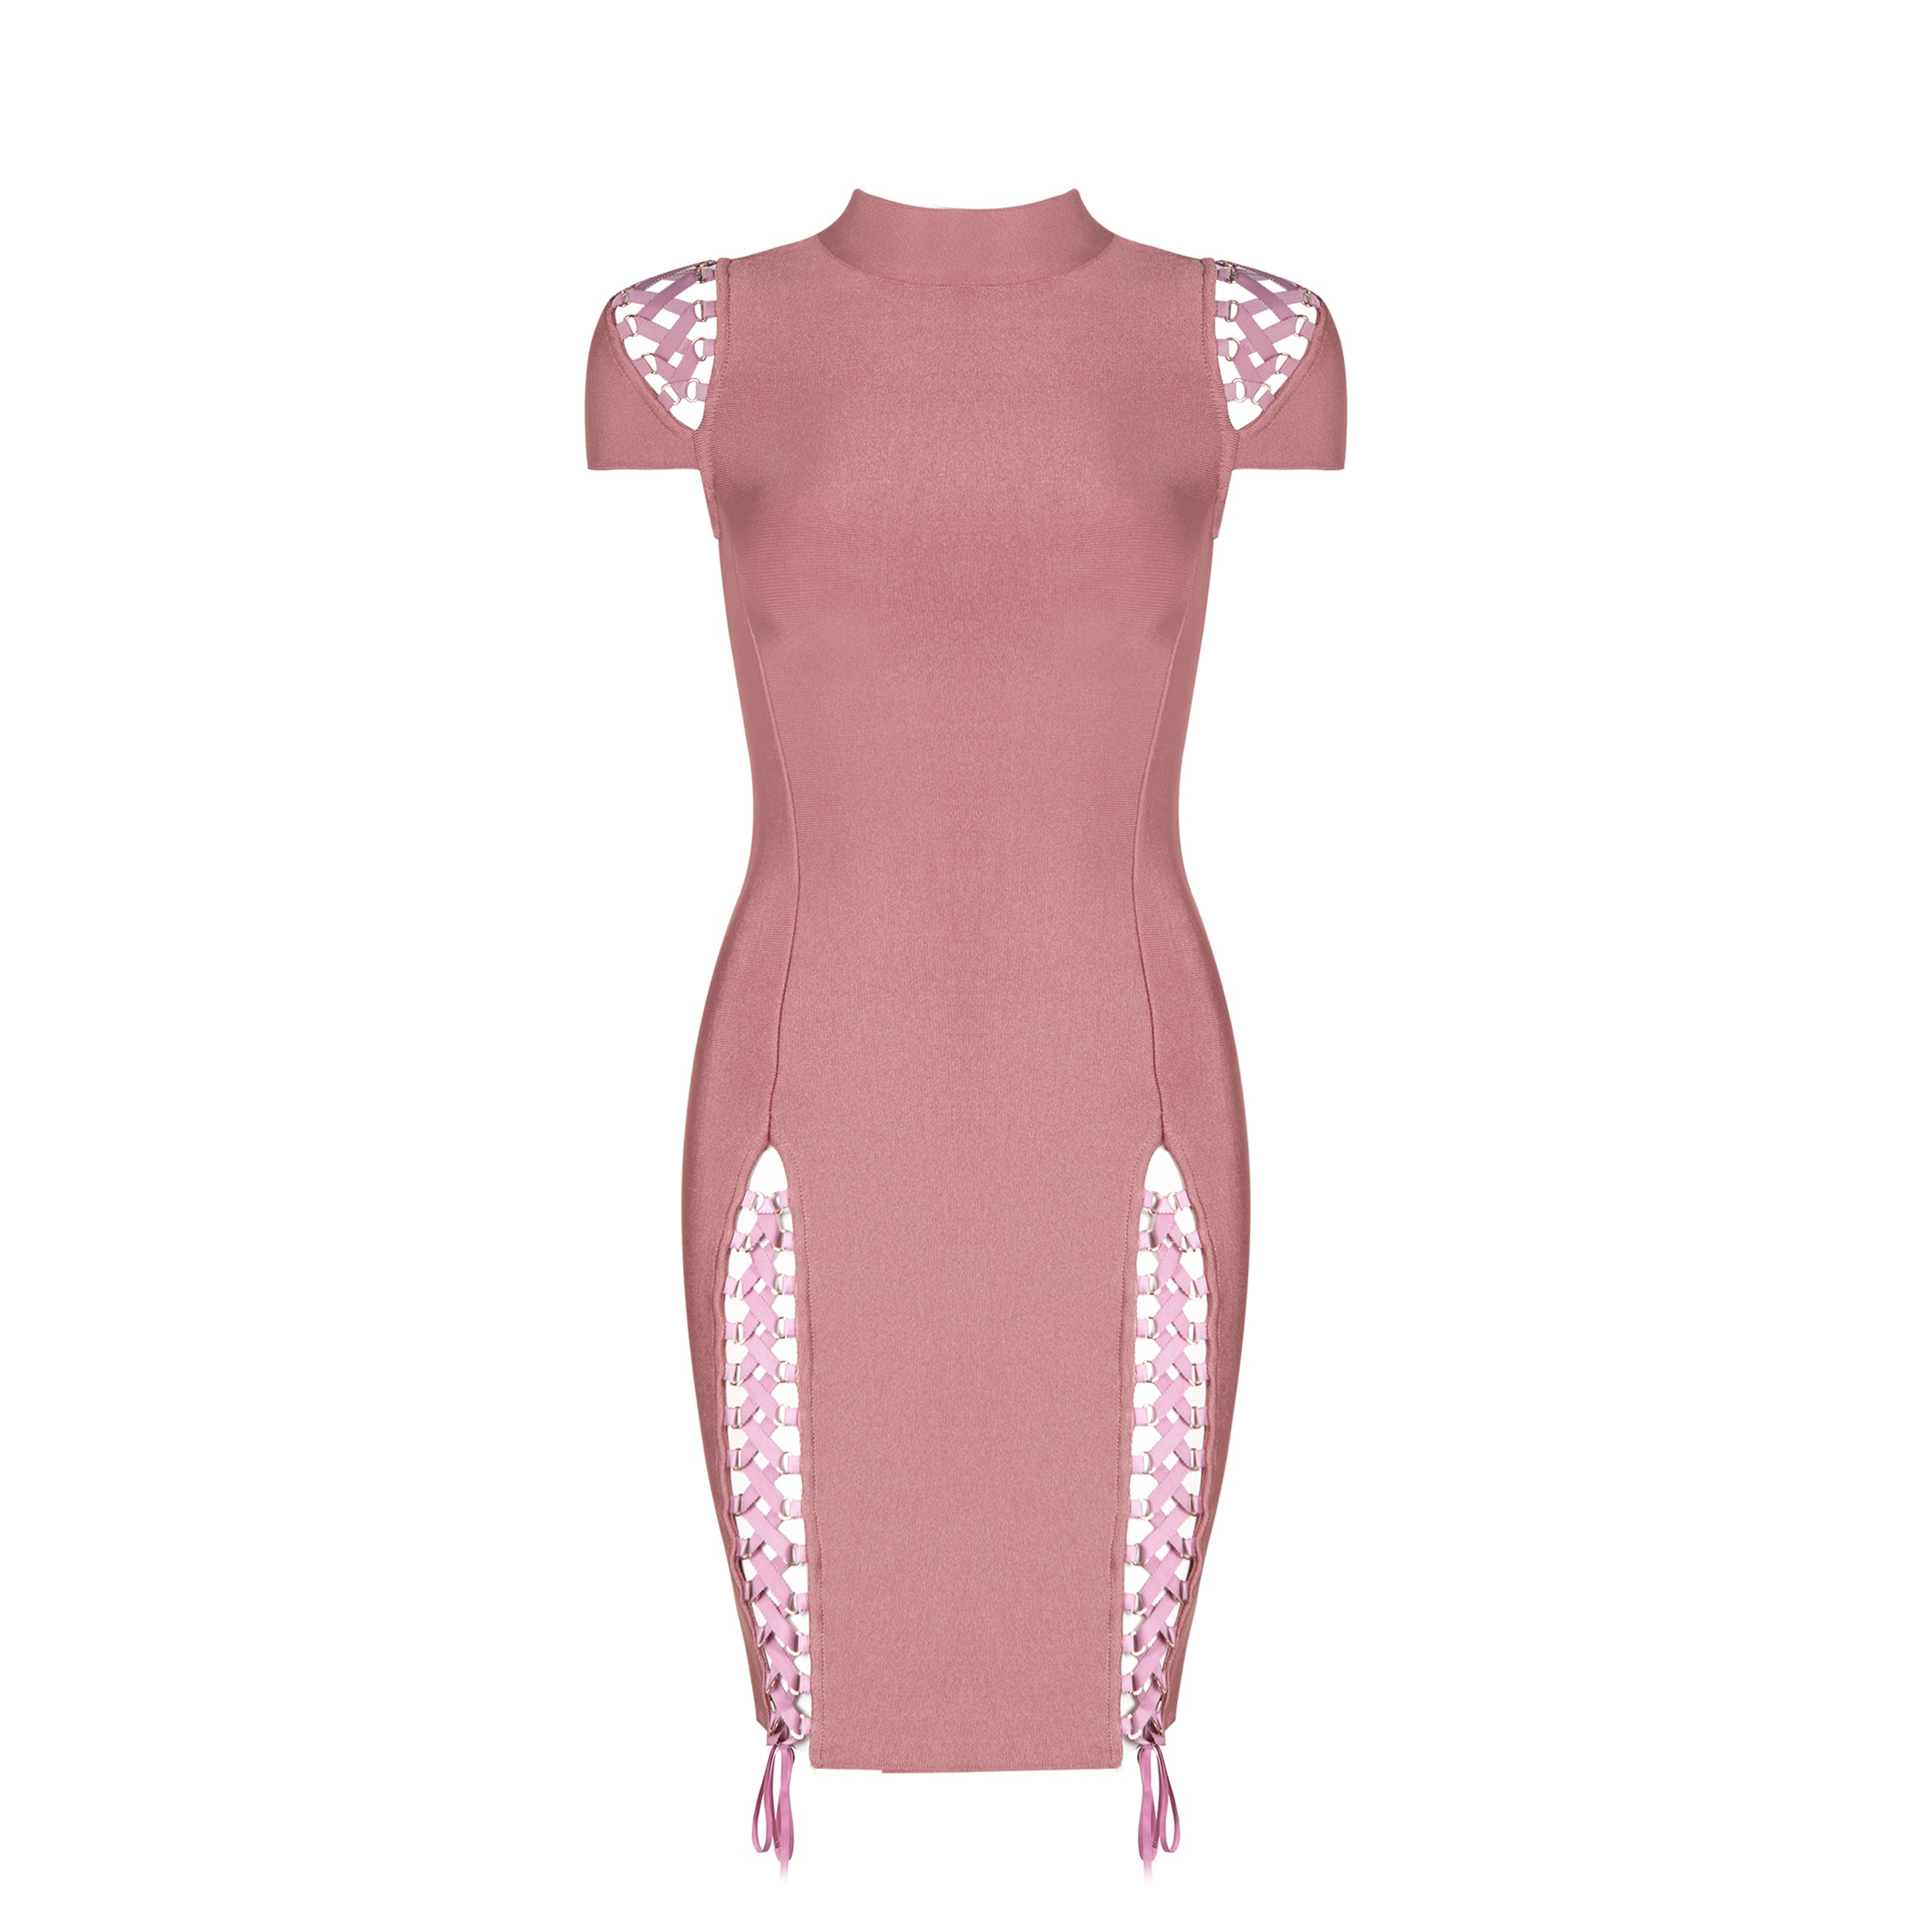 Peach High Neck Cap Sleeve Mini Lace Up Sexy Bandage Dress HB1016-Peach